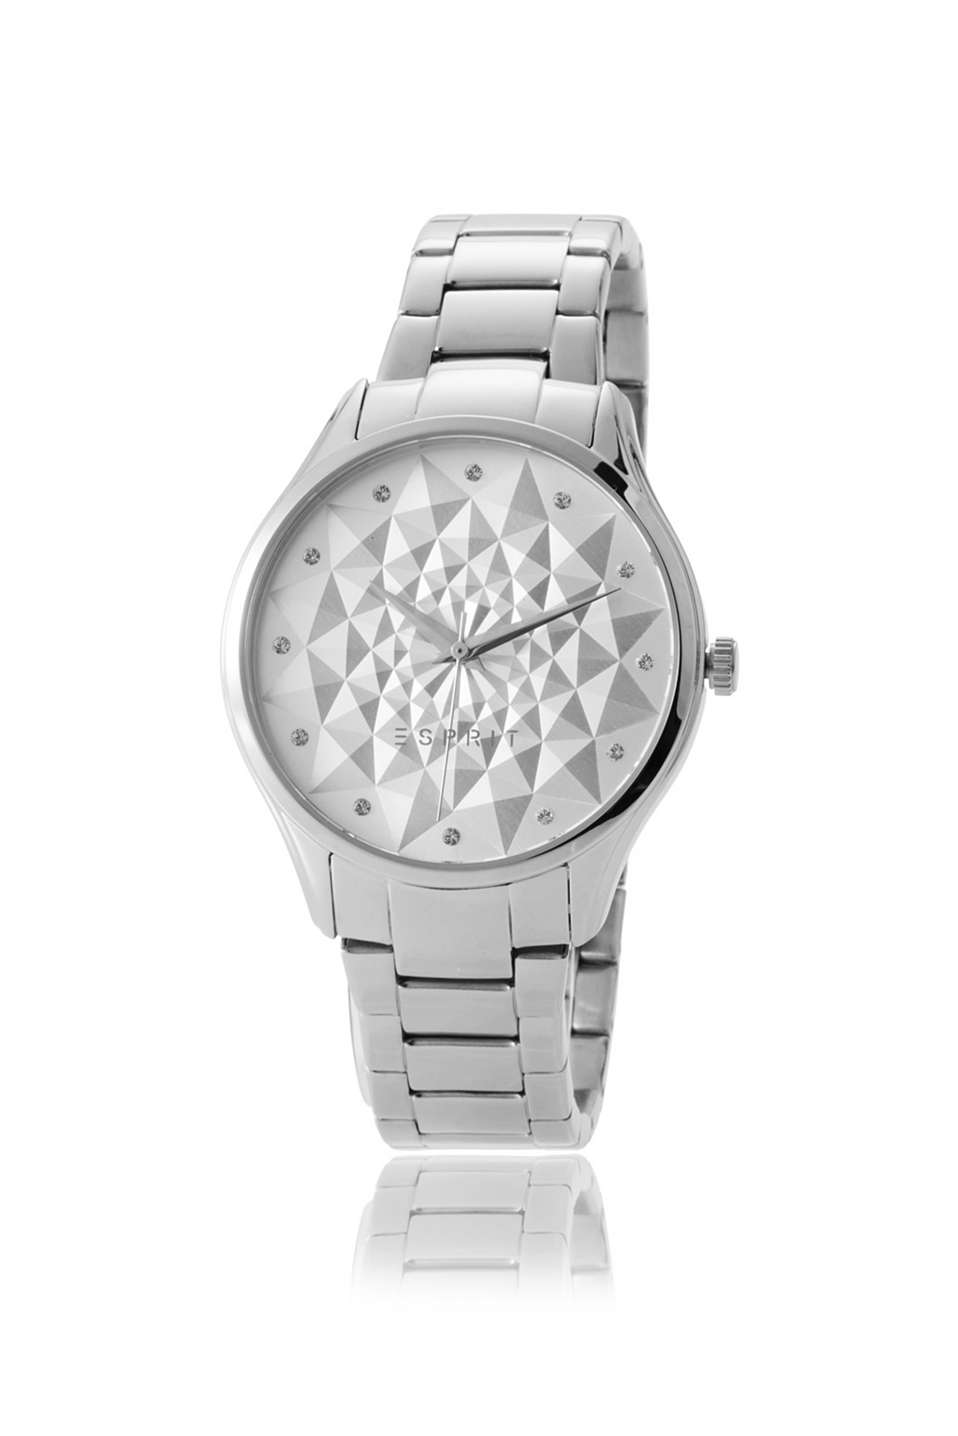 Polished stainless-steel casing and strap, graphically textured and zirconia-trimmed dial, Ø approx. 36 mm